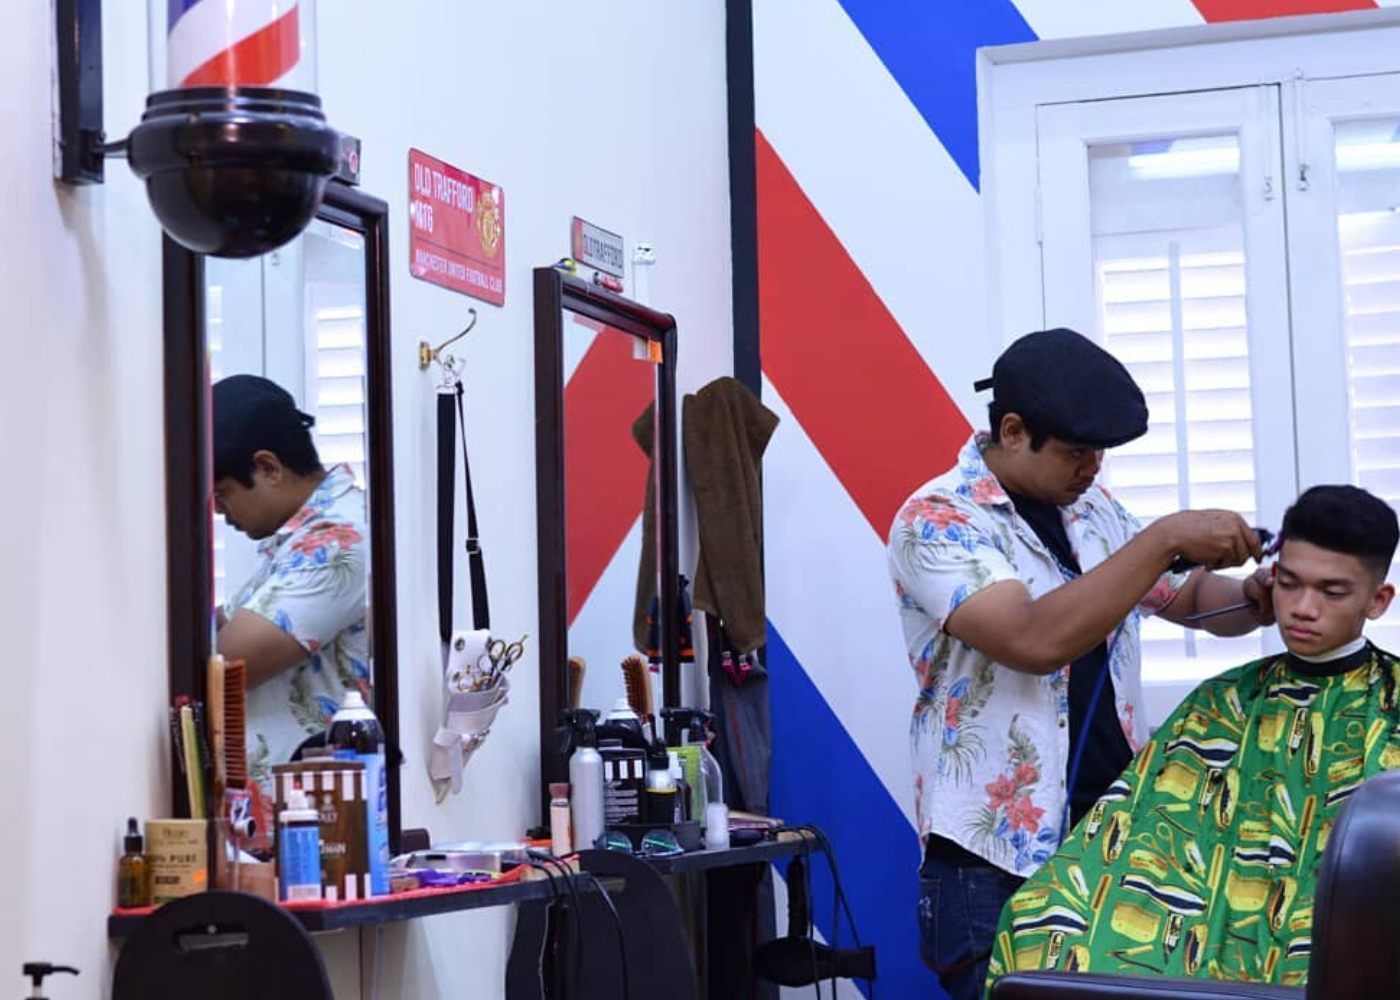 Barbershops in Singapore: The 'A' Street Barber Shop